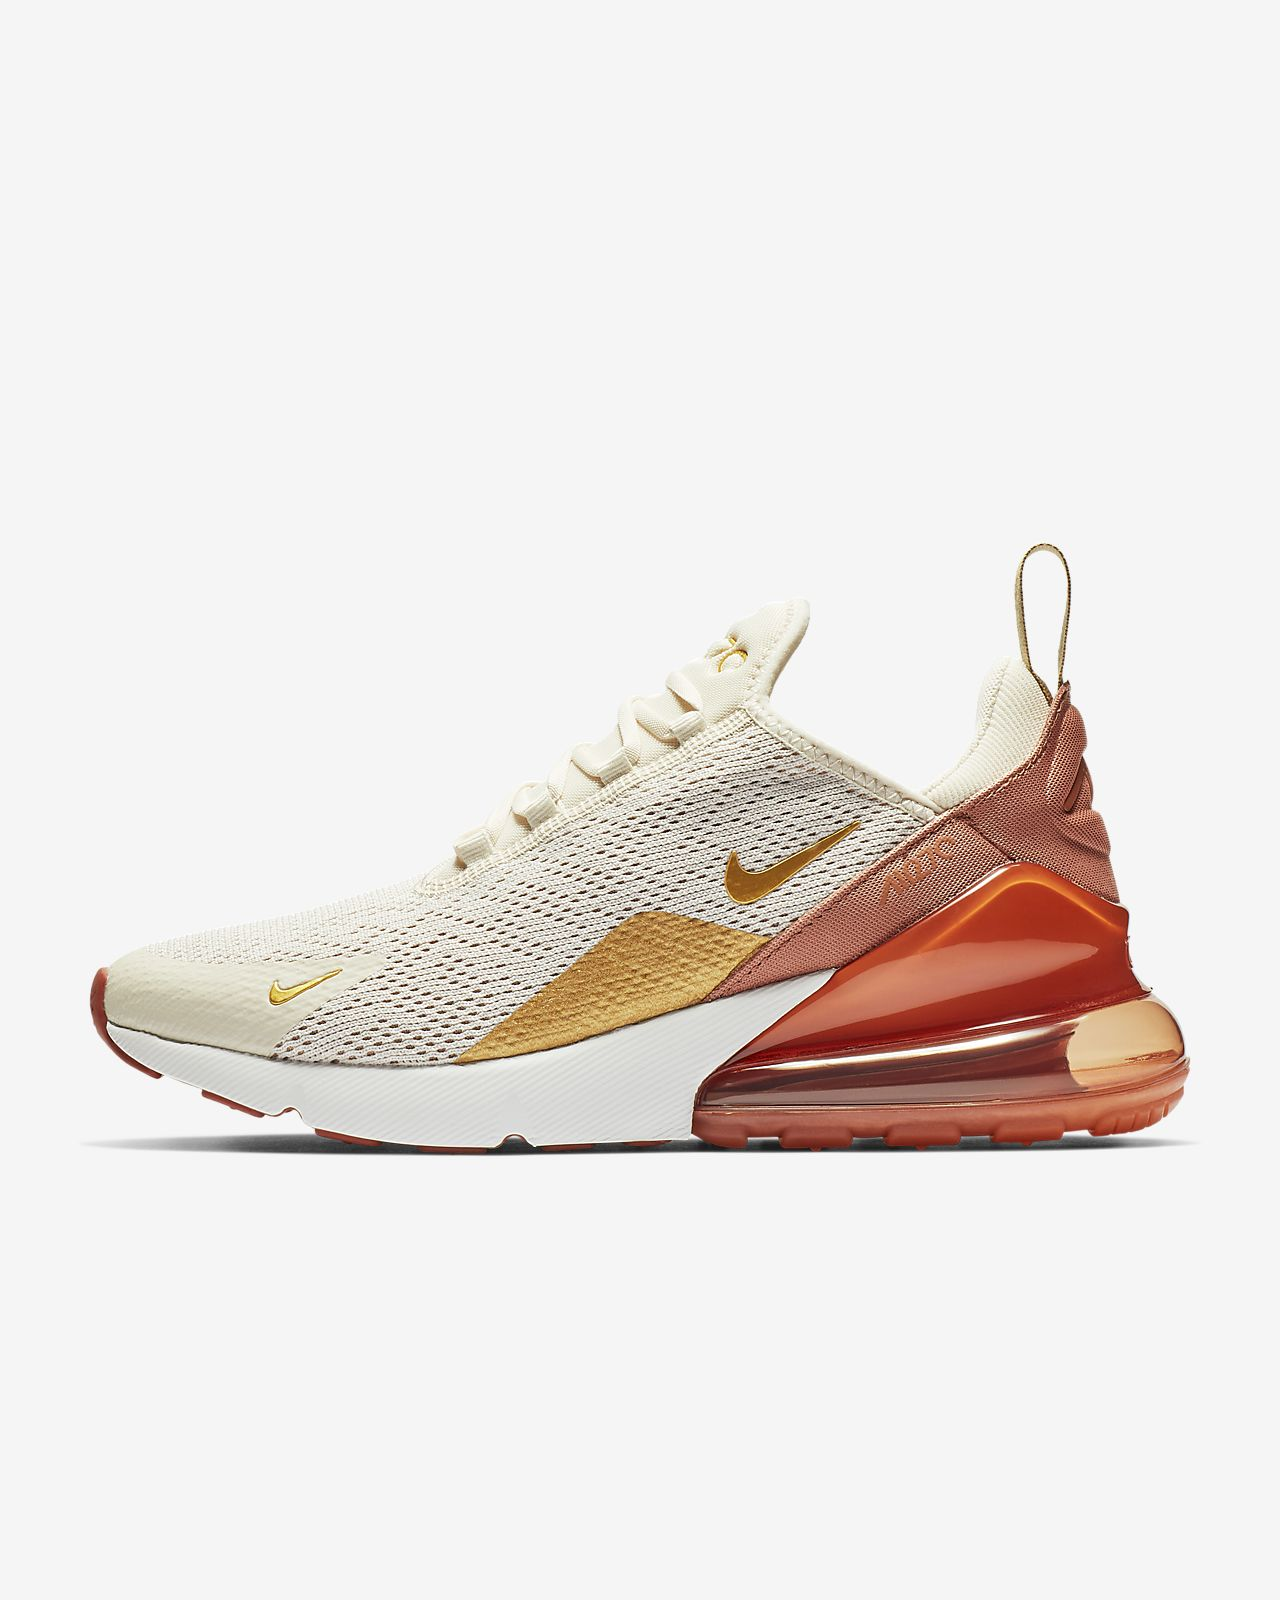 3355ac64d56 Nike Air Max 270 Women s Shoe. Nike.com GB